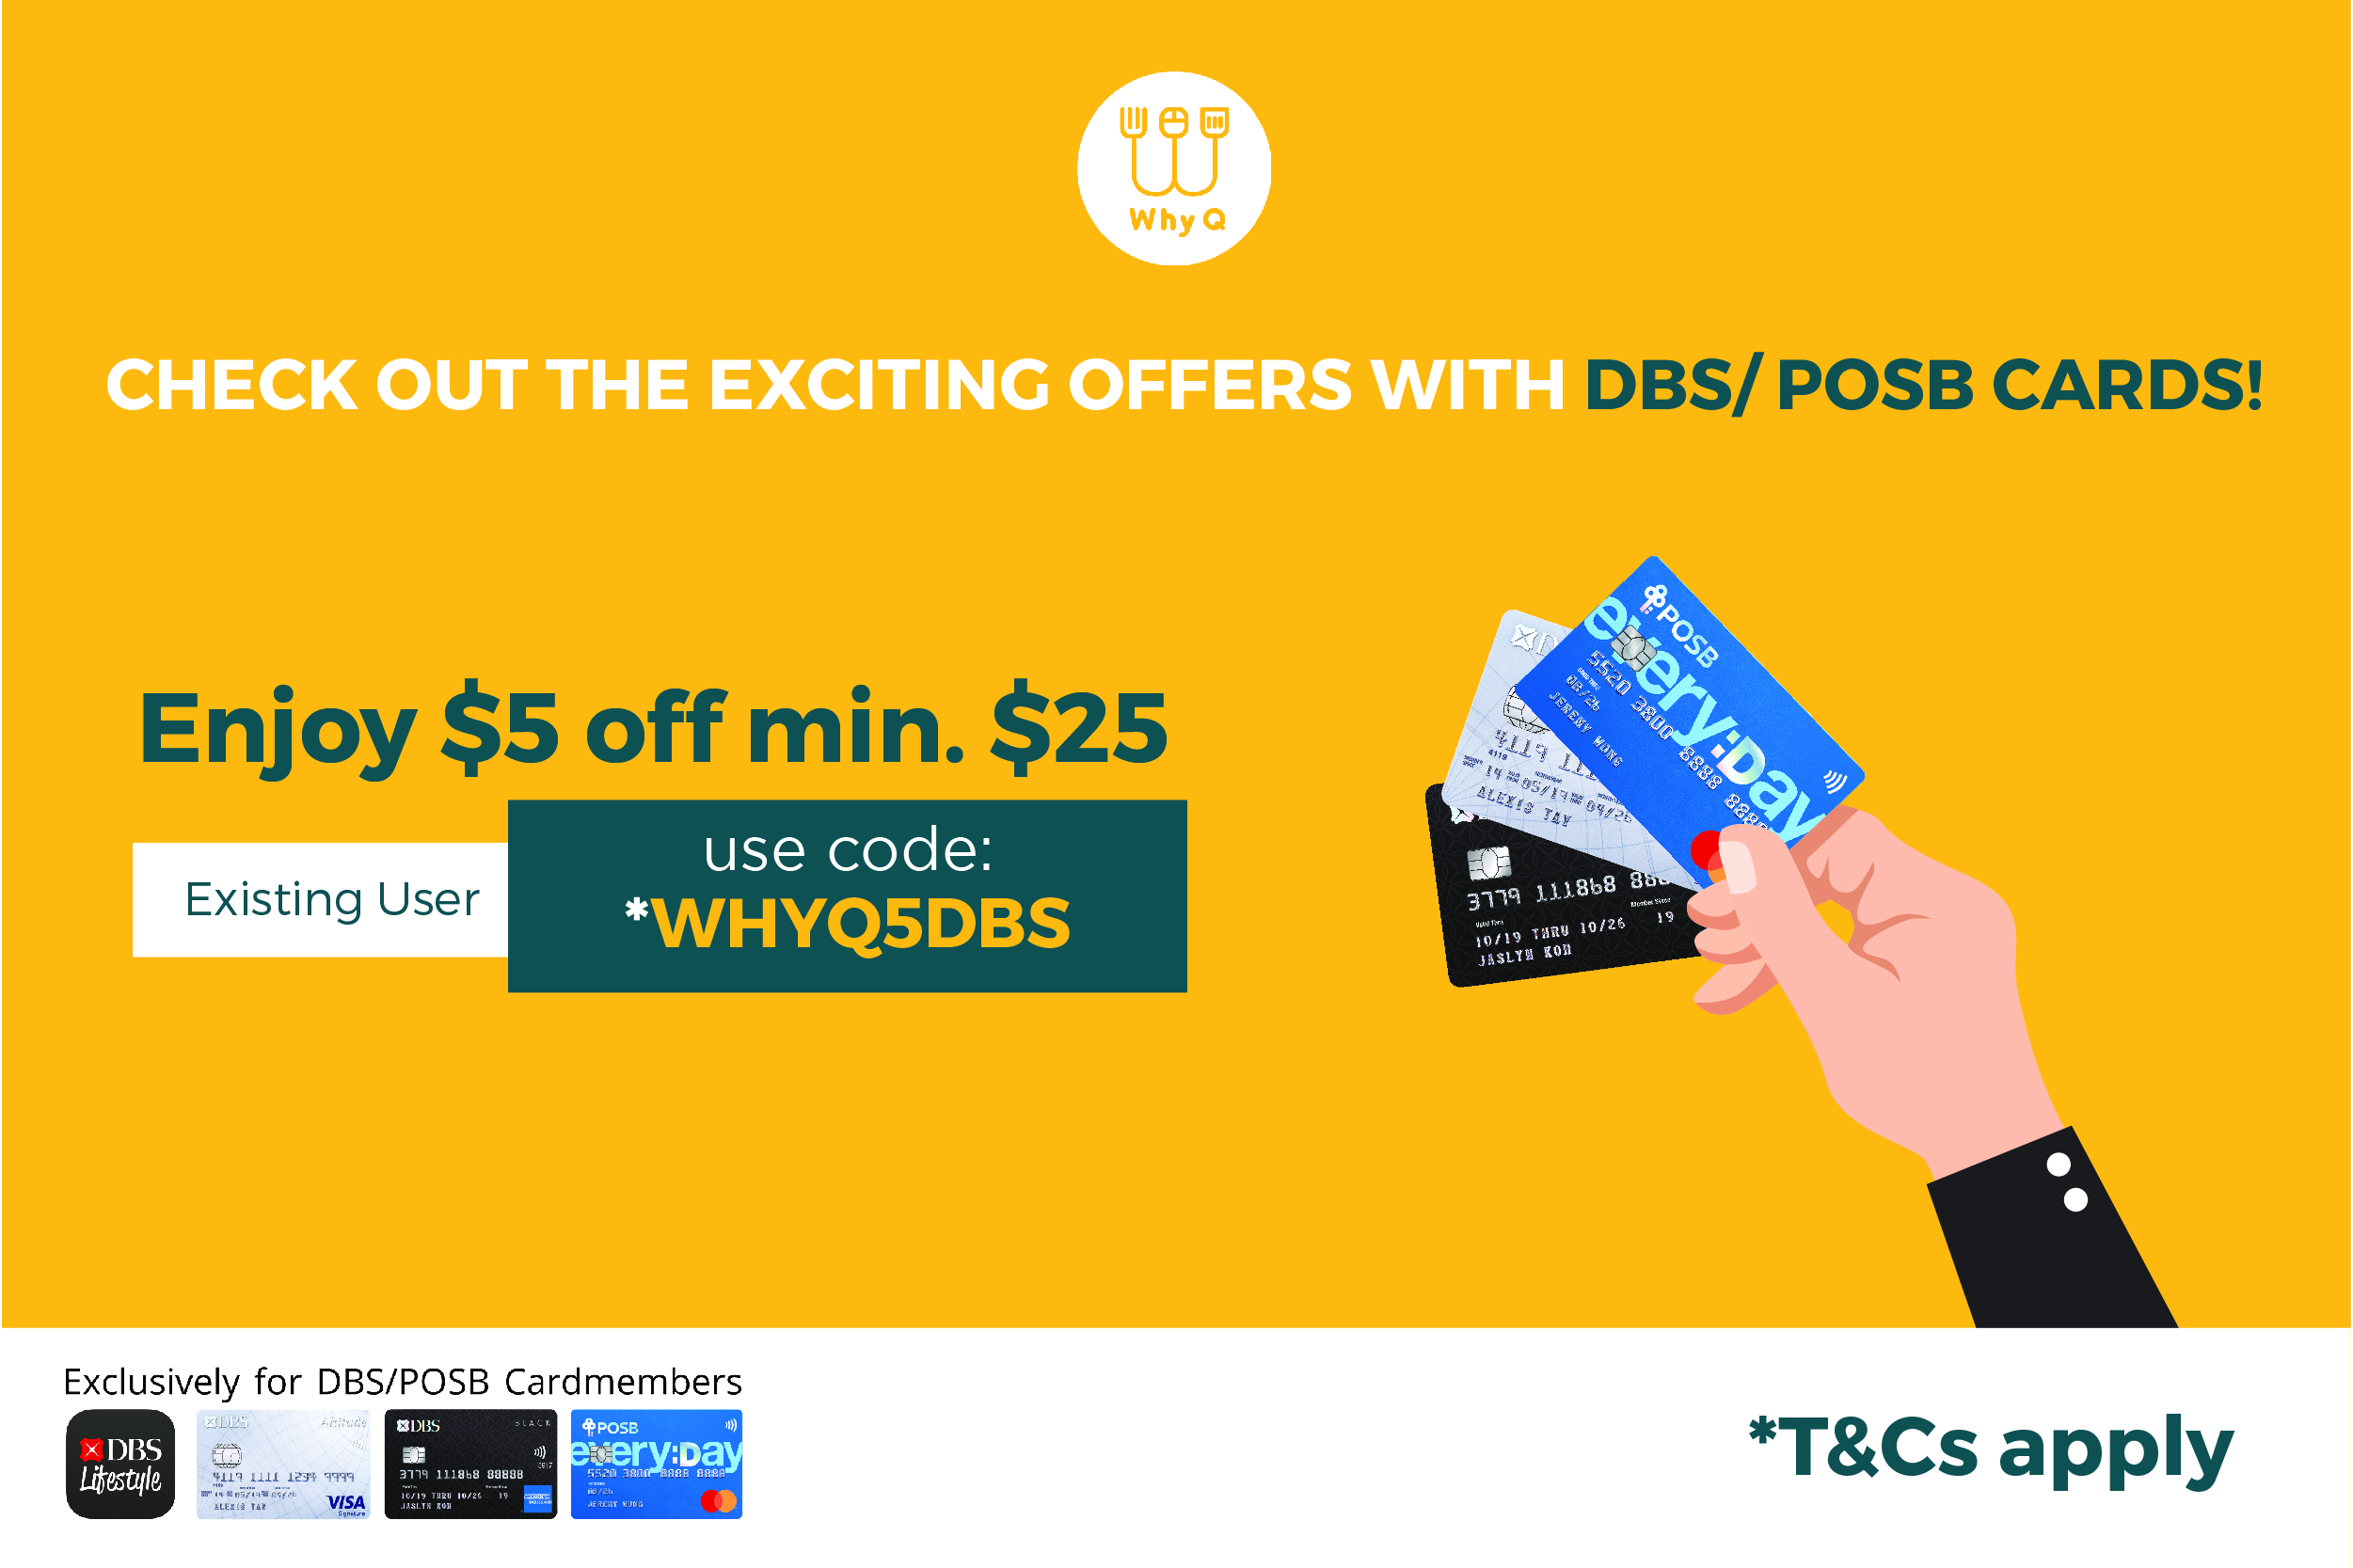 WhyQ Promotion WHYQ5DBS